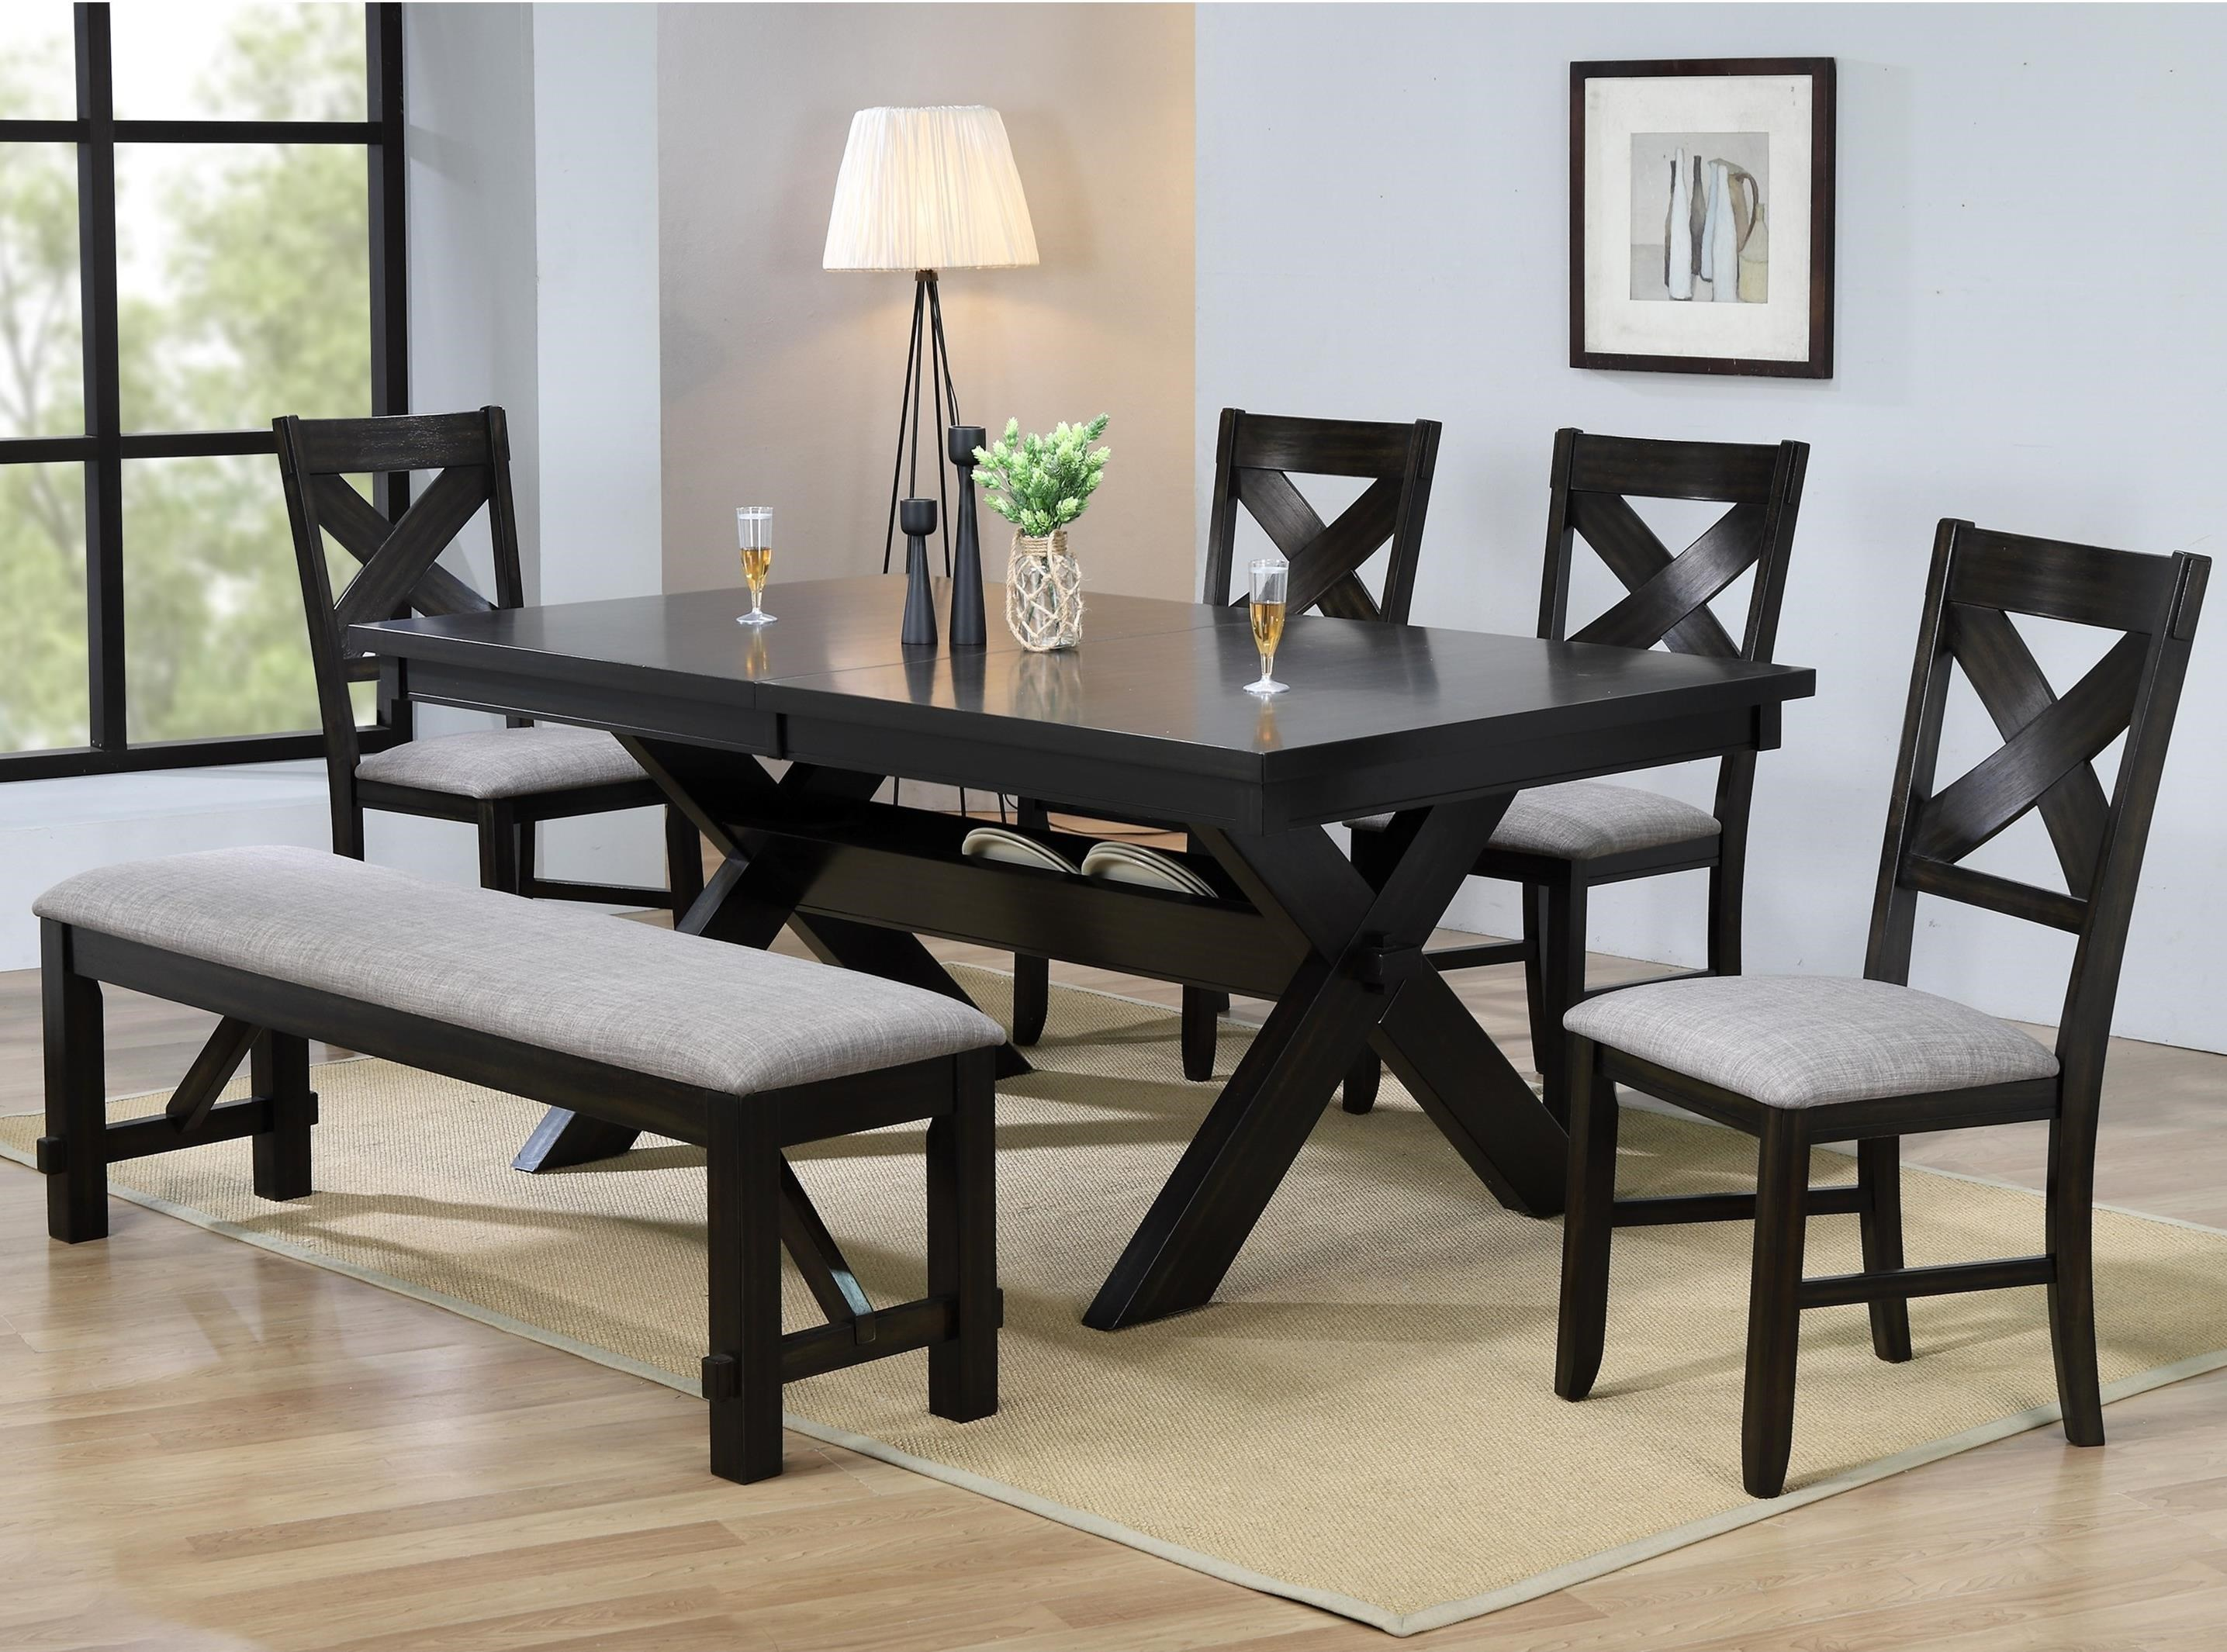 8 Piece Table & Chair Set